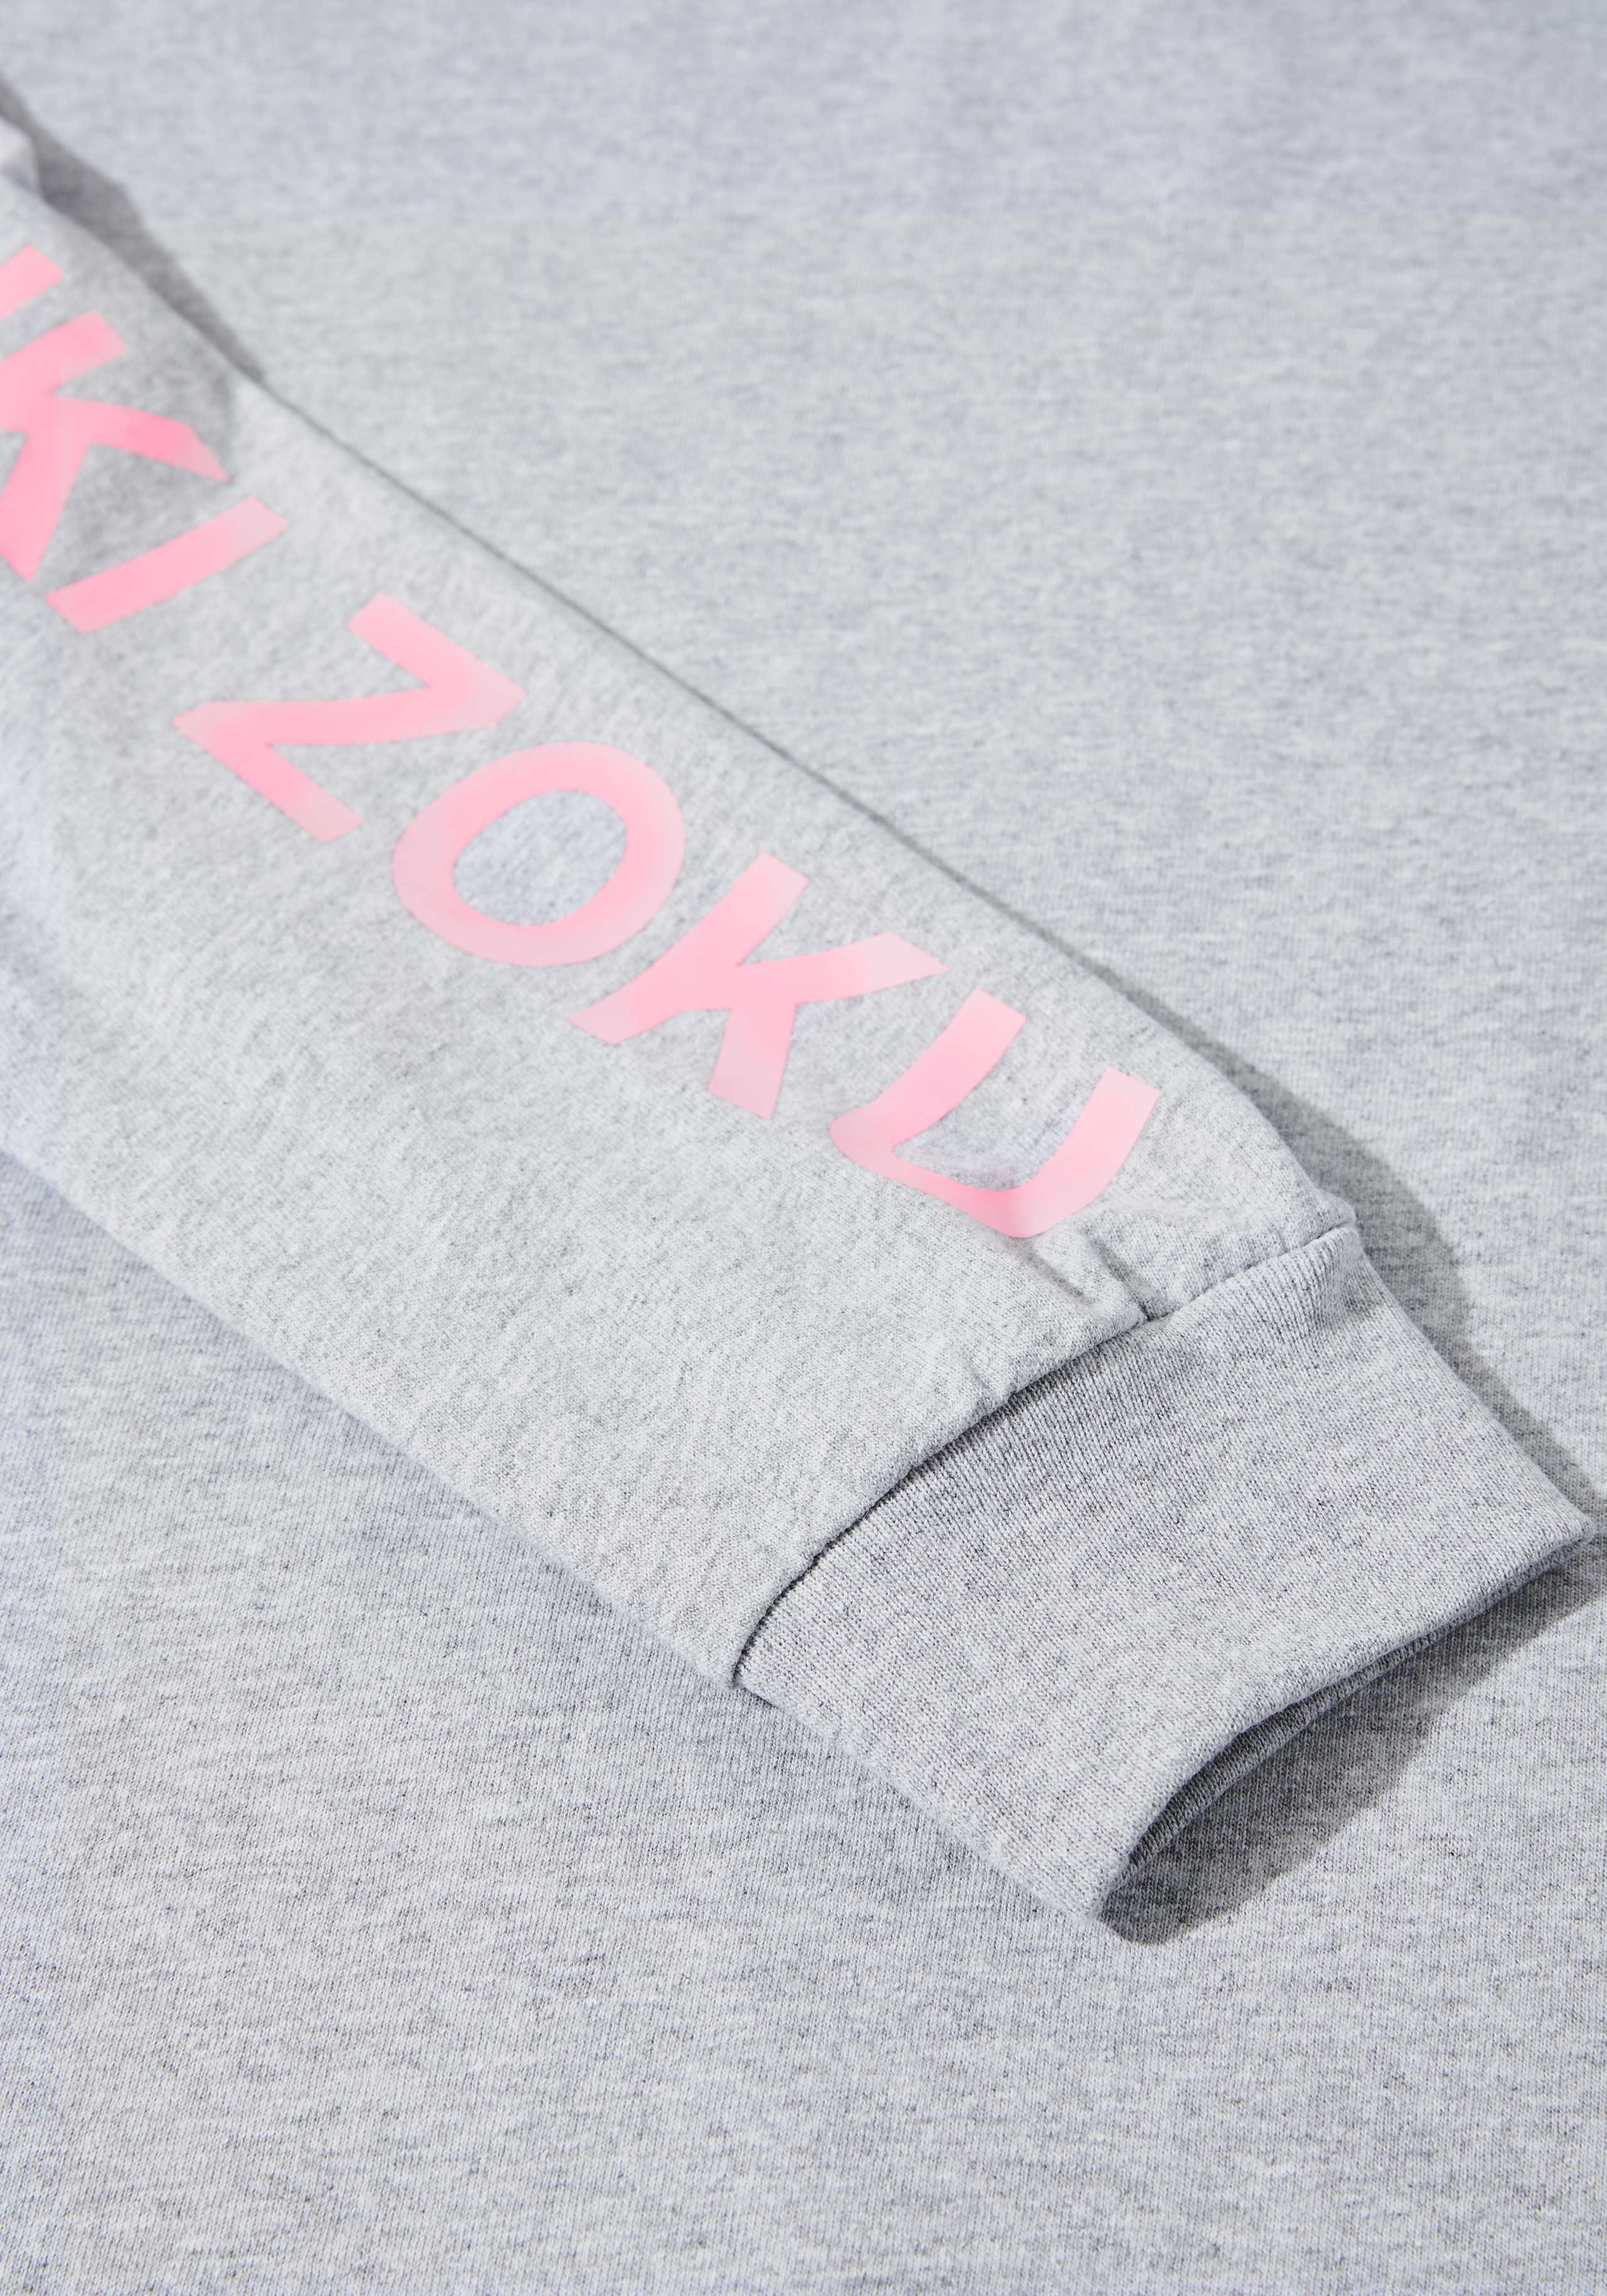 mki neon logo long sleeve 5